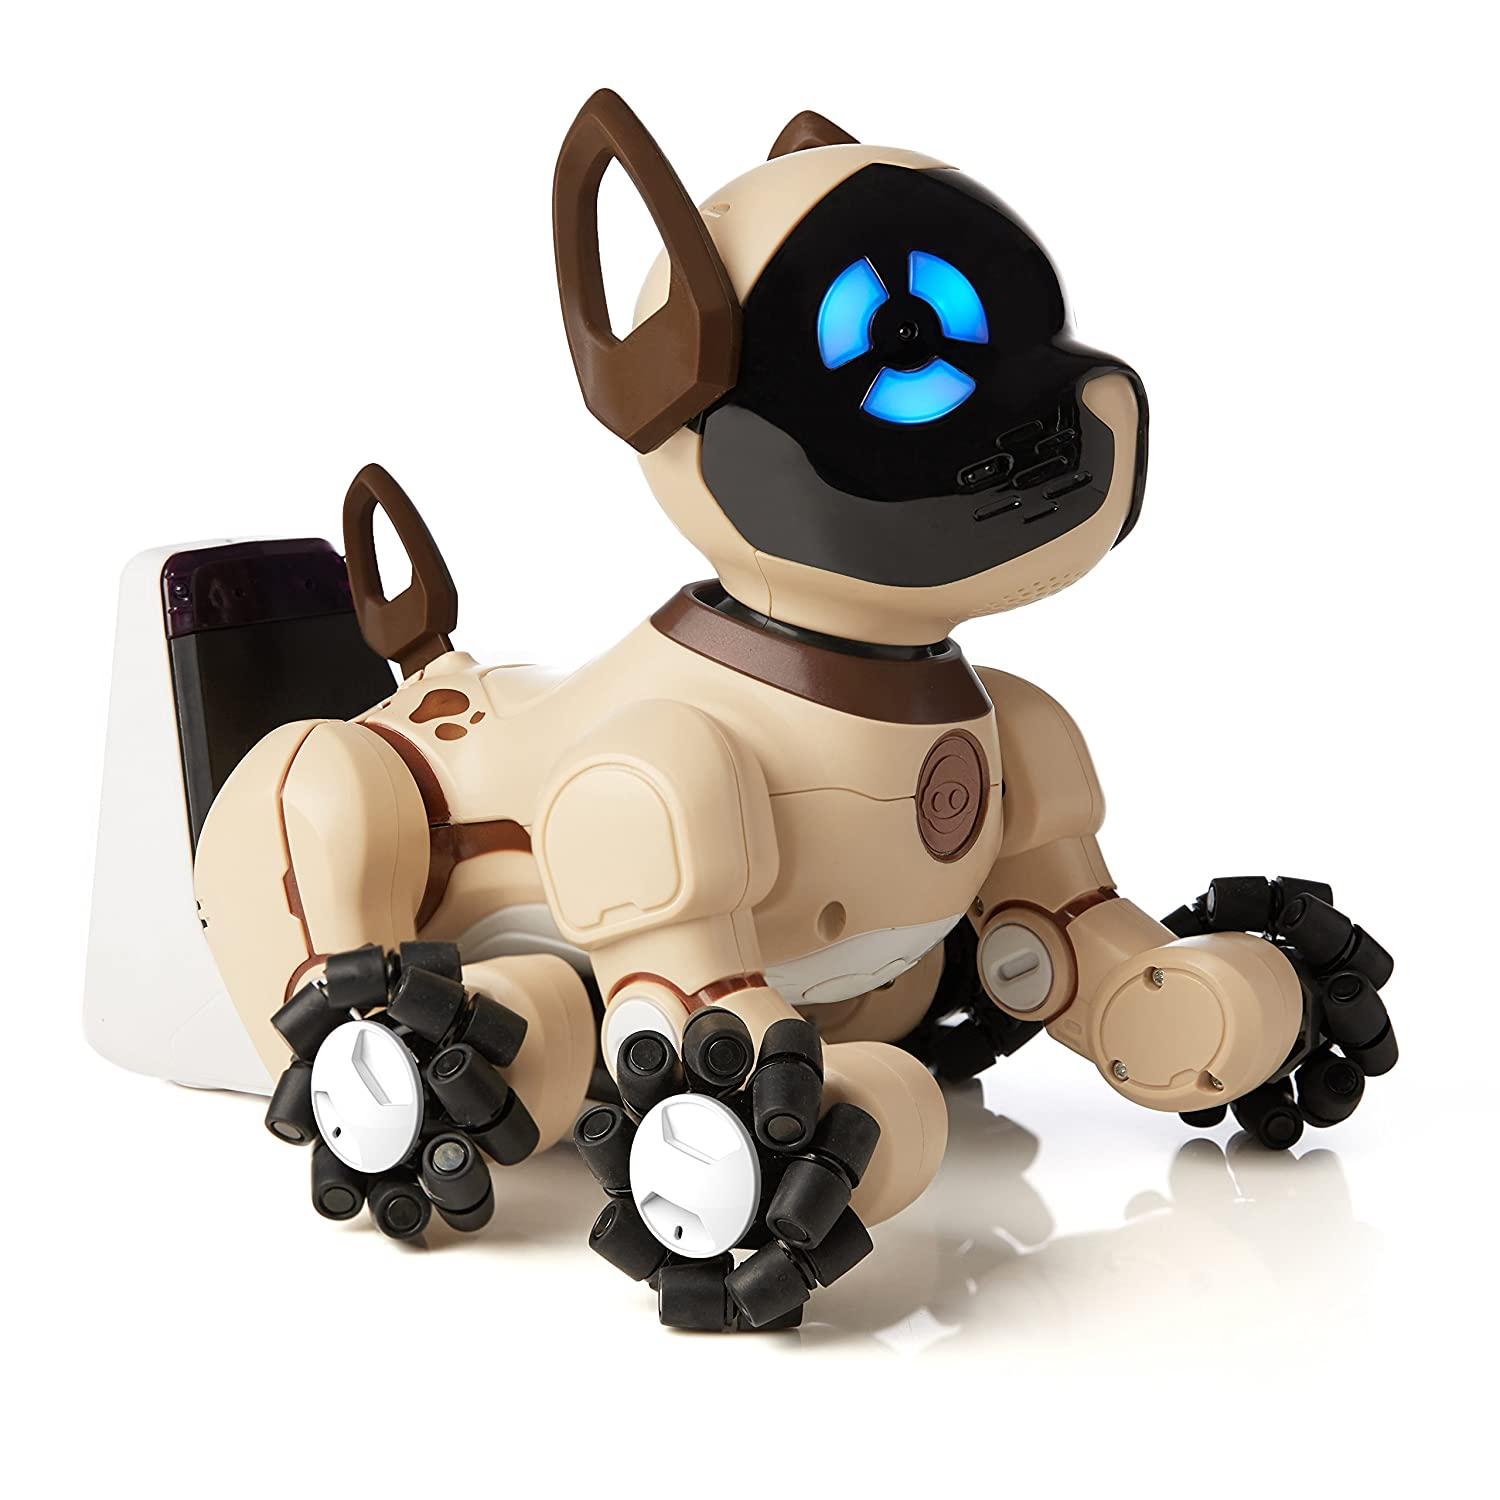 WowWee CHiP Robot Toy Dog Chocolate Amazon Exclusive Amazon